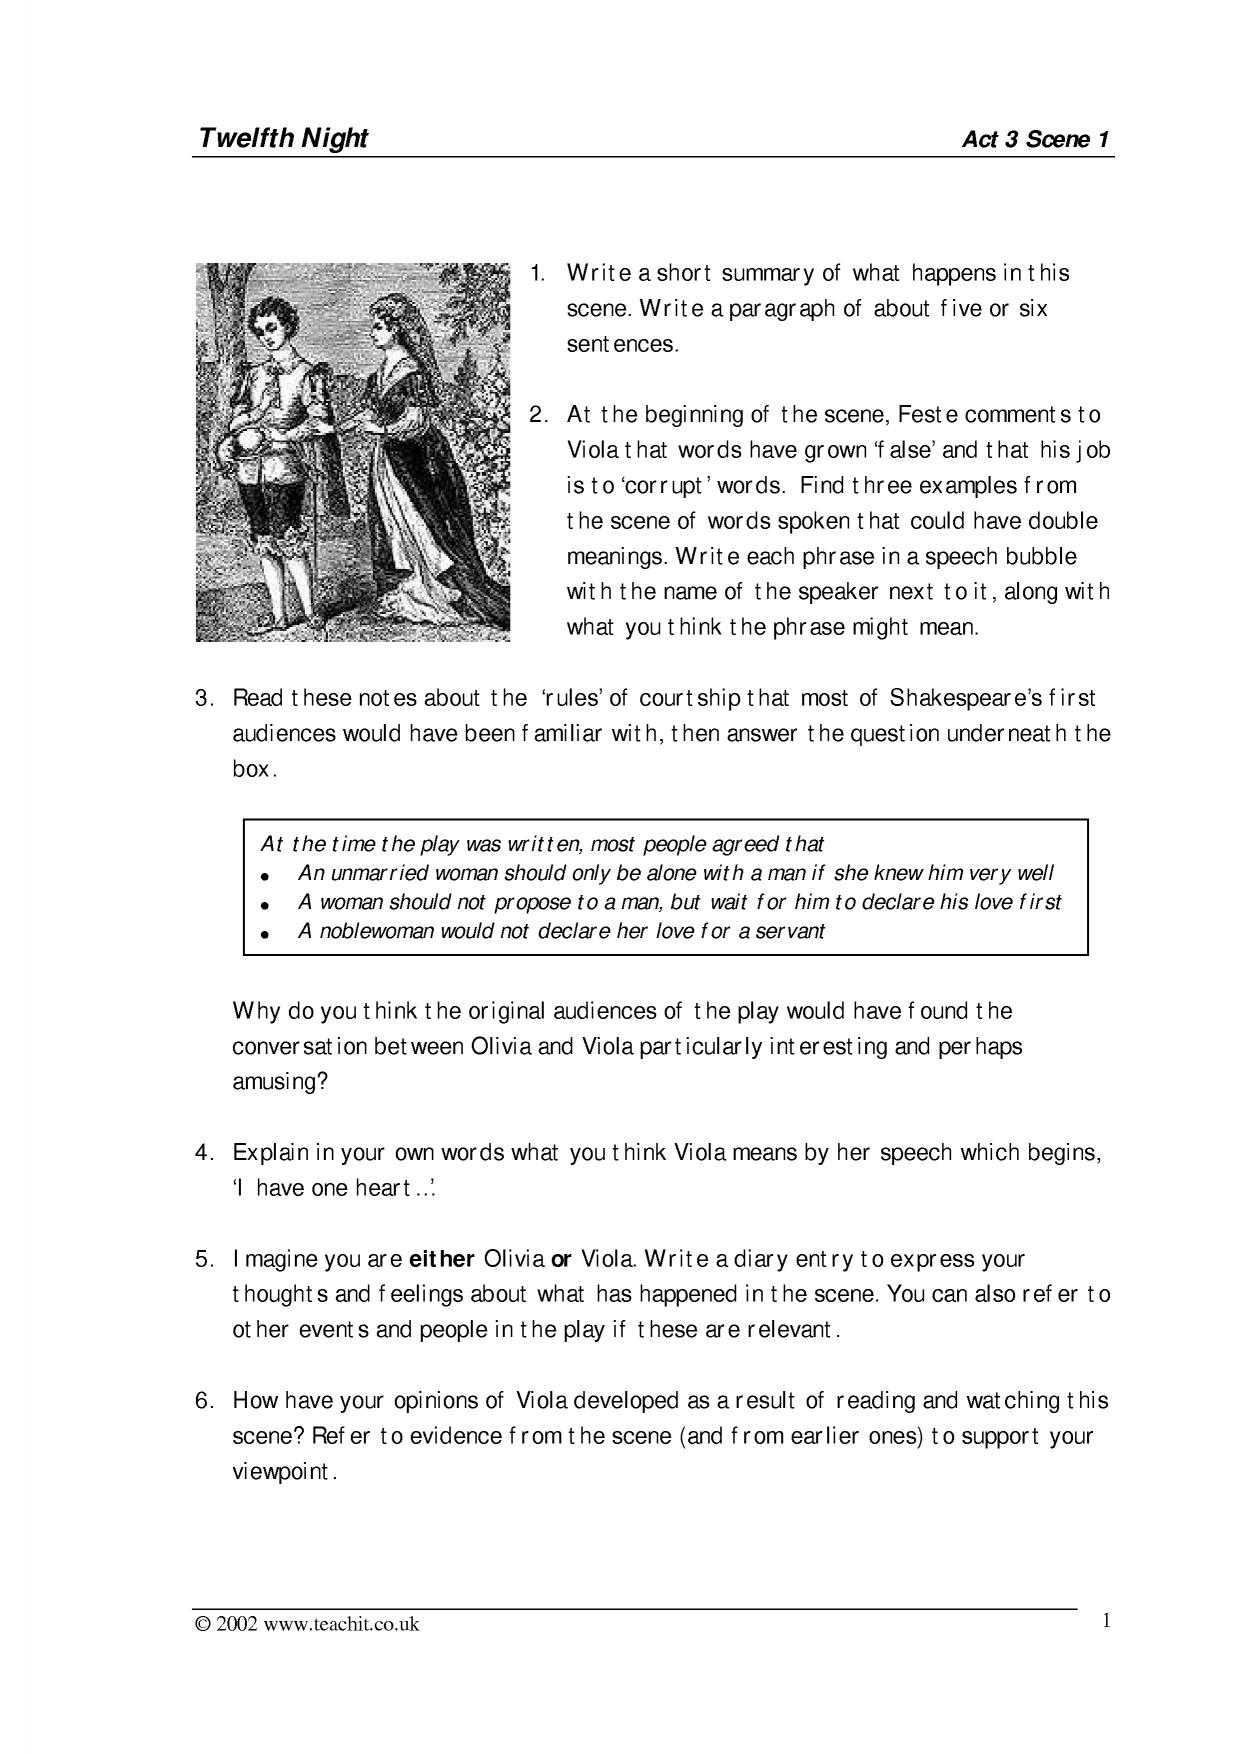 twelfth night essay on love essay topics on love love essay topics  twelfth night act scene and act scene ks plays key 0 preview